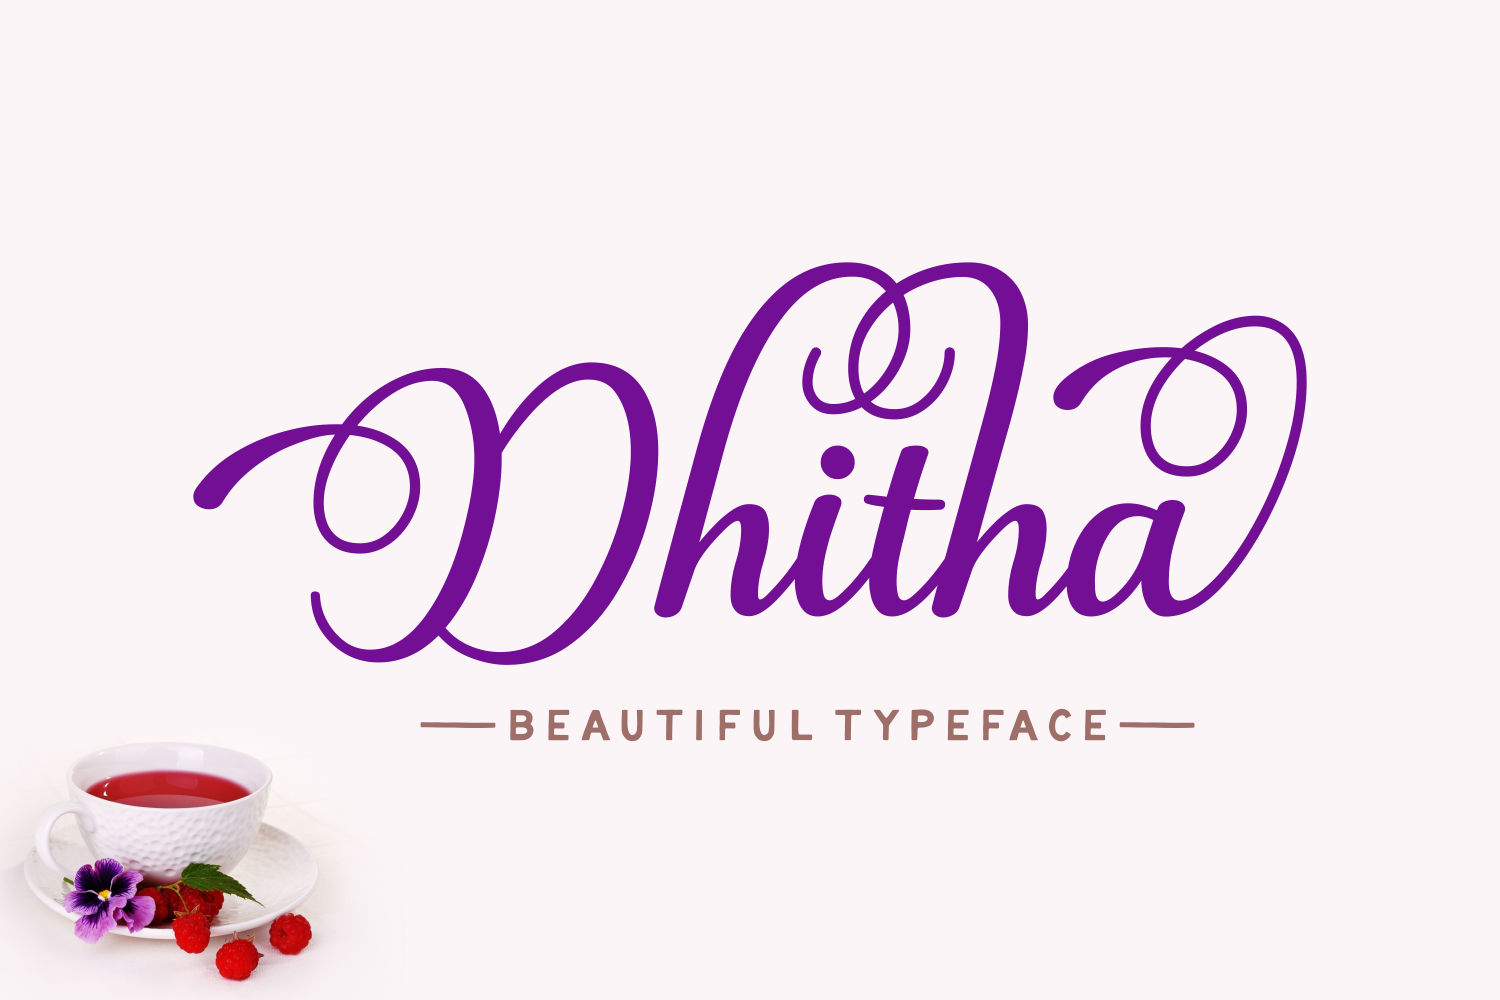 Dhitha Font By Andrian Dehasta Image 1